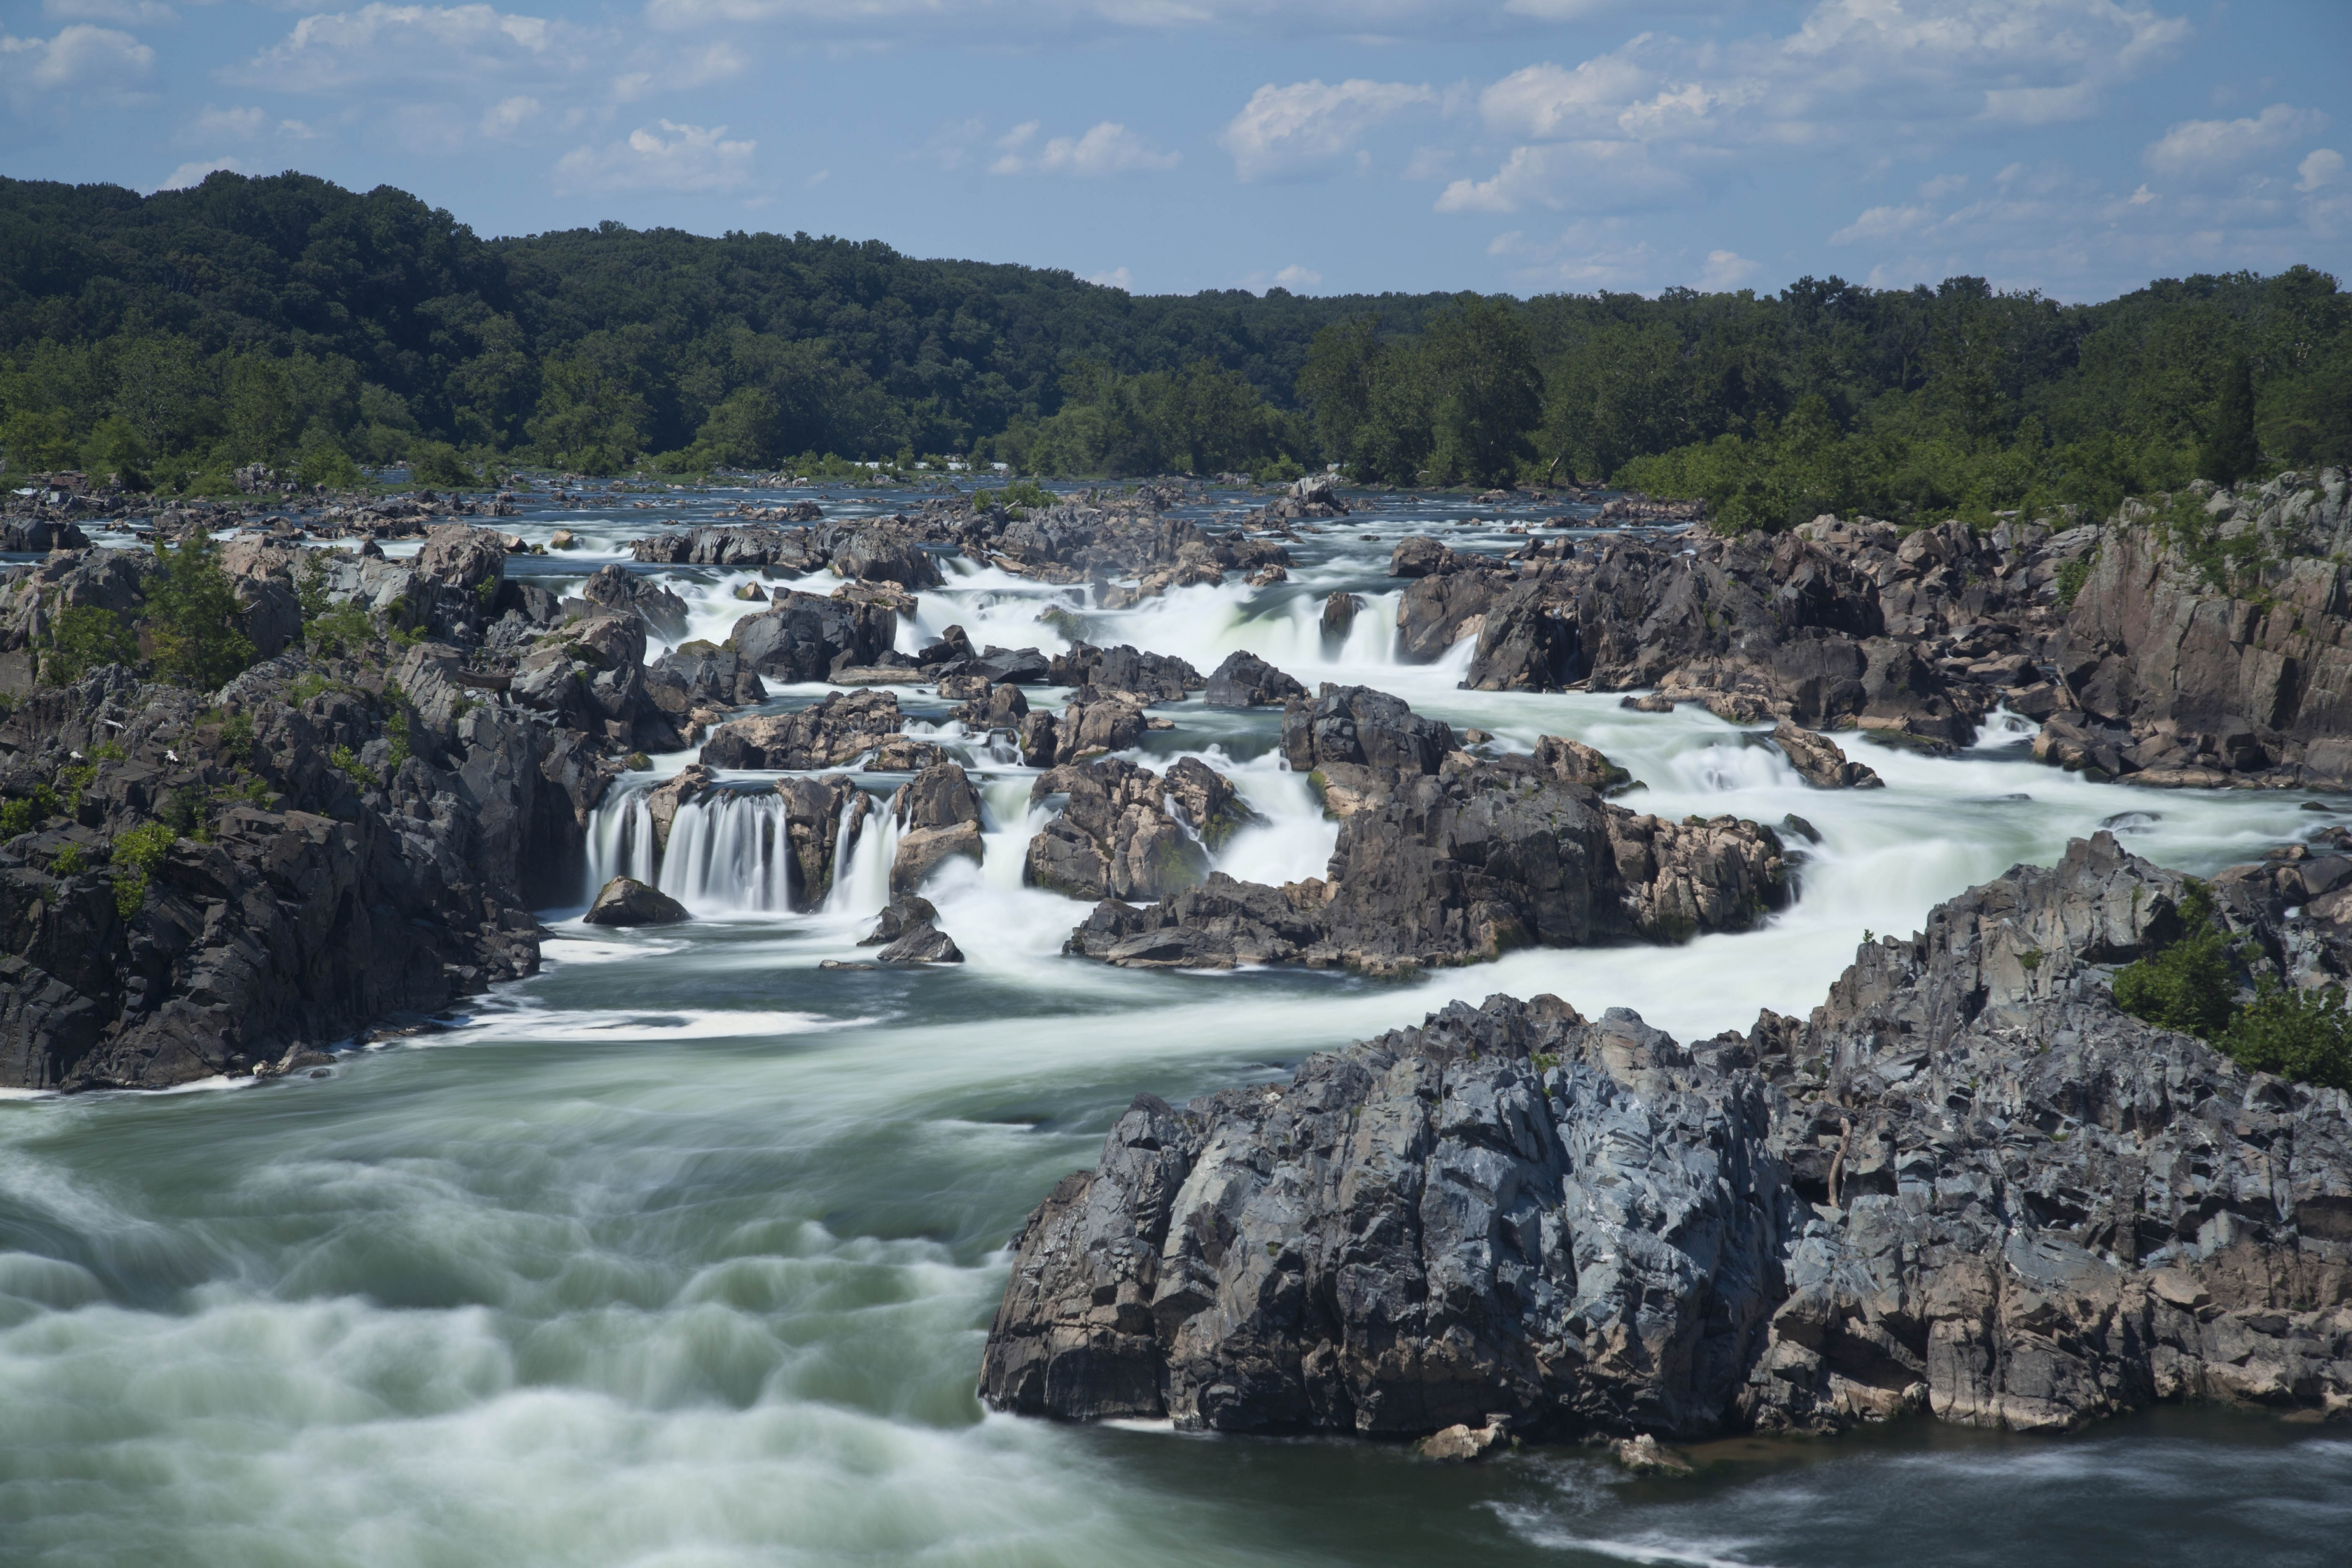 Parque Nacional Great Falls fuera de Washington, DC.